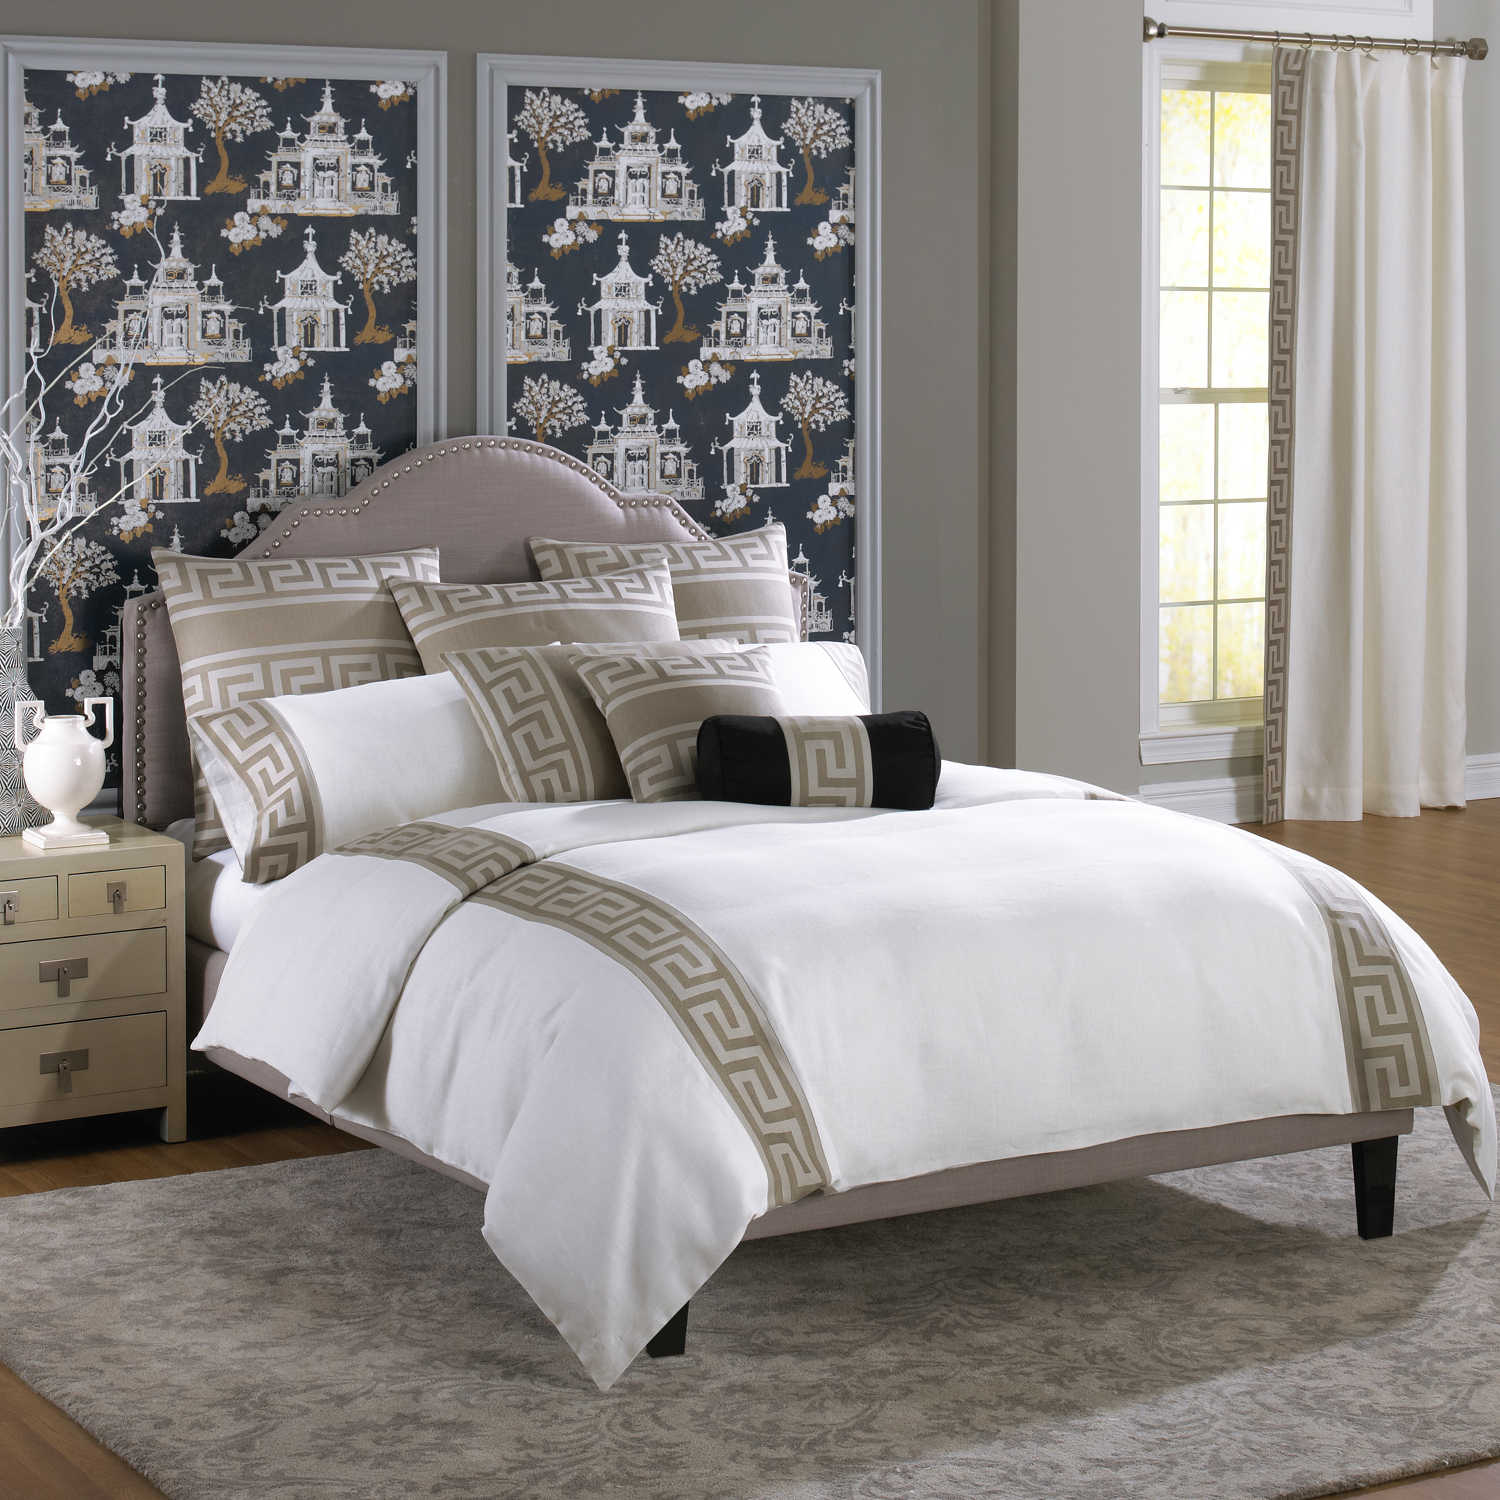 Wildcat Territory Bedding - Milos Key Pewter Collection Swatch